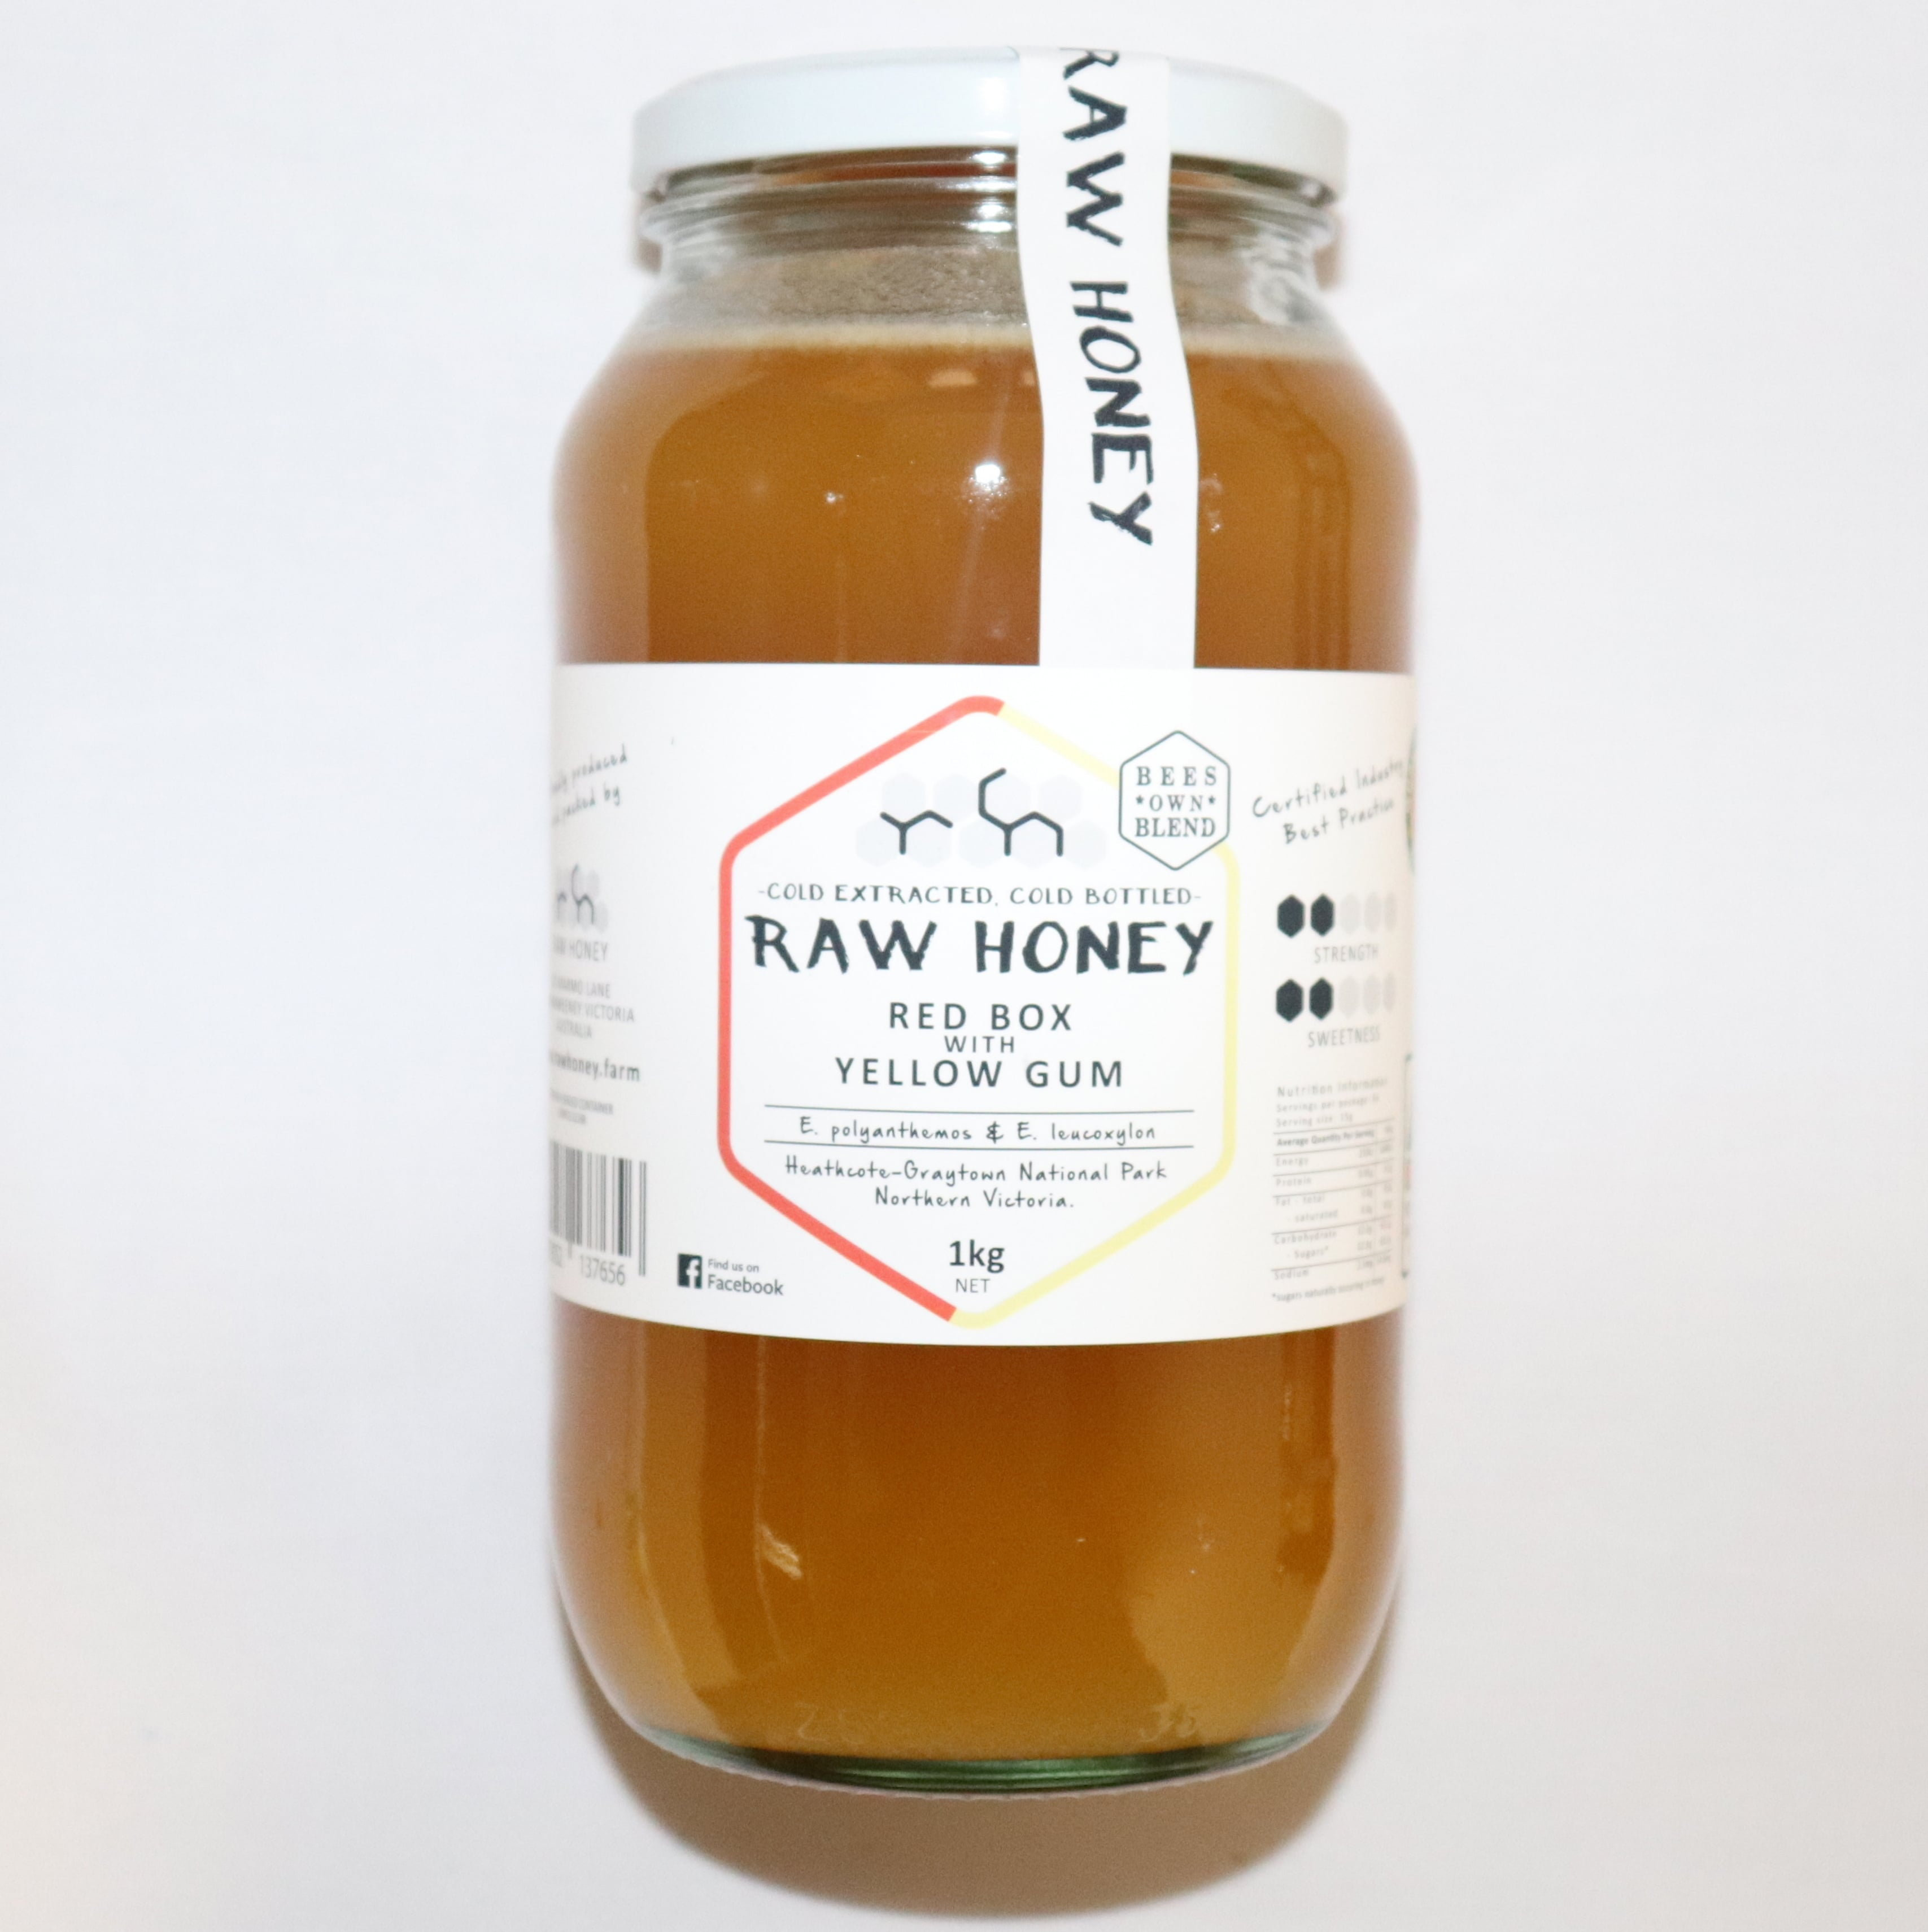 Raw Honey – Red Box with Yellow Gum 1kg